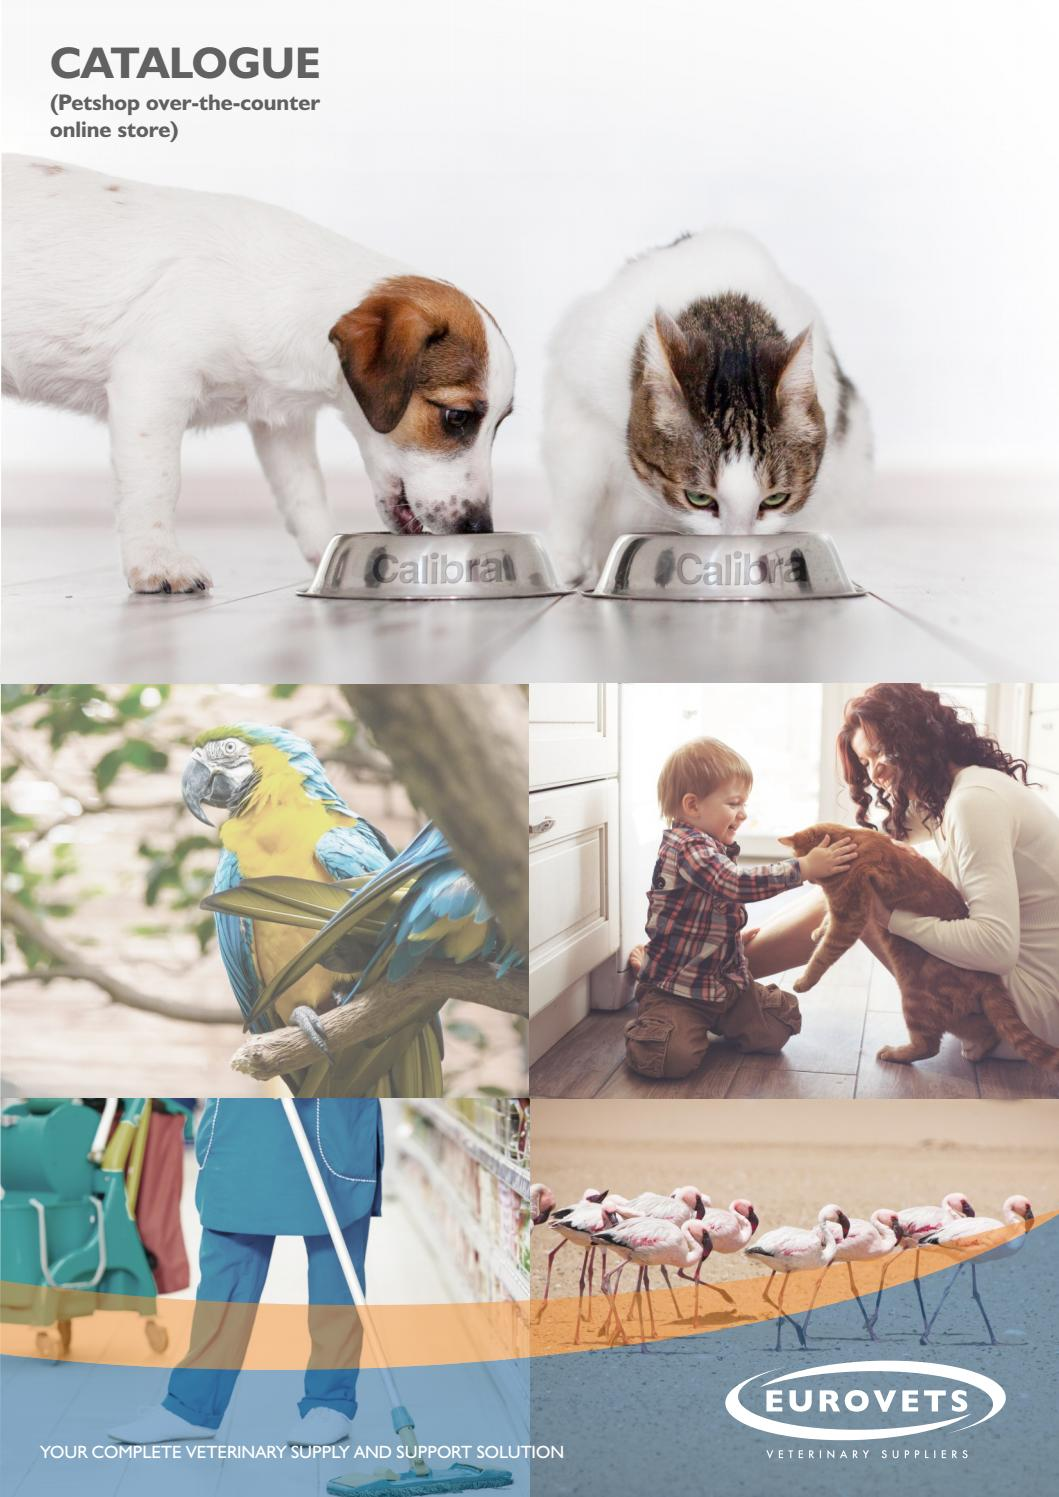 Eurovets' comprehensive brochure for our Petshop clients by Eurovets